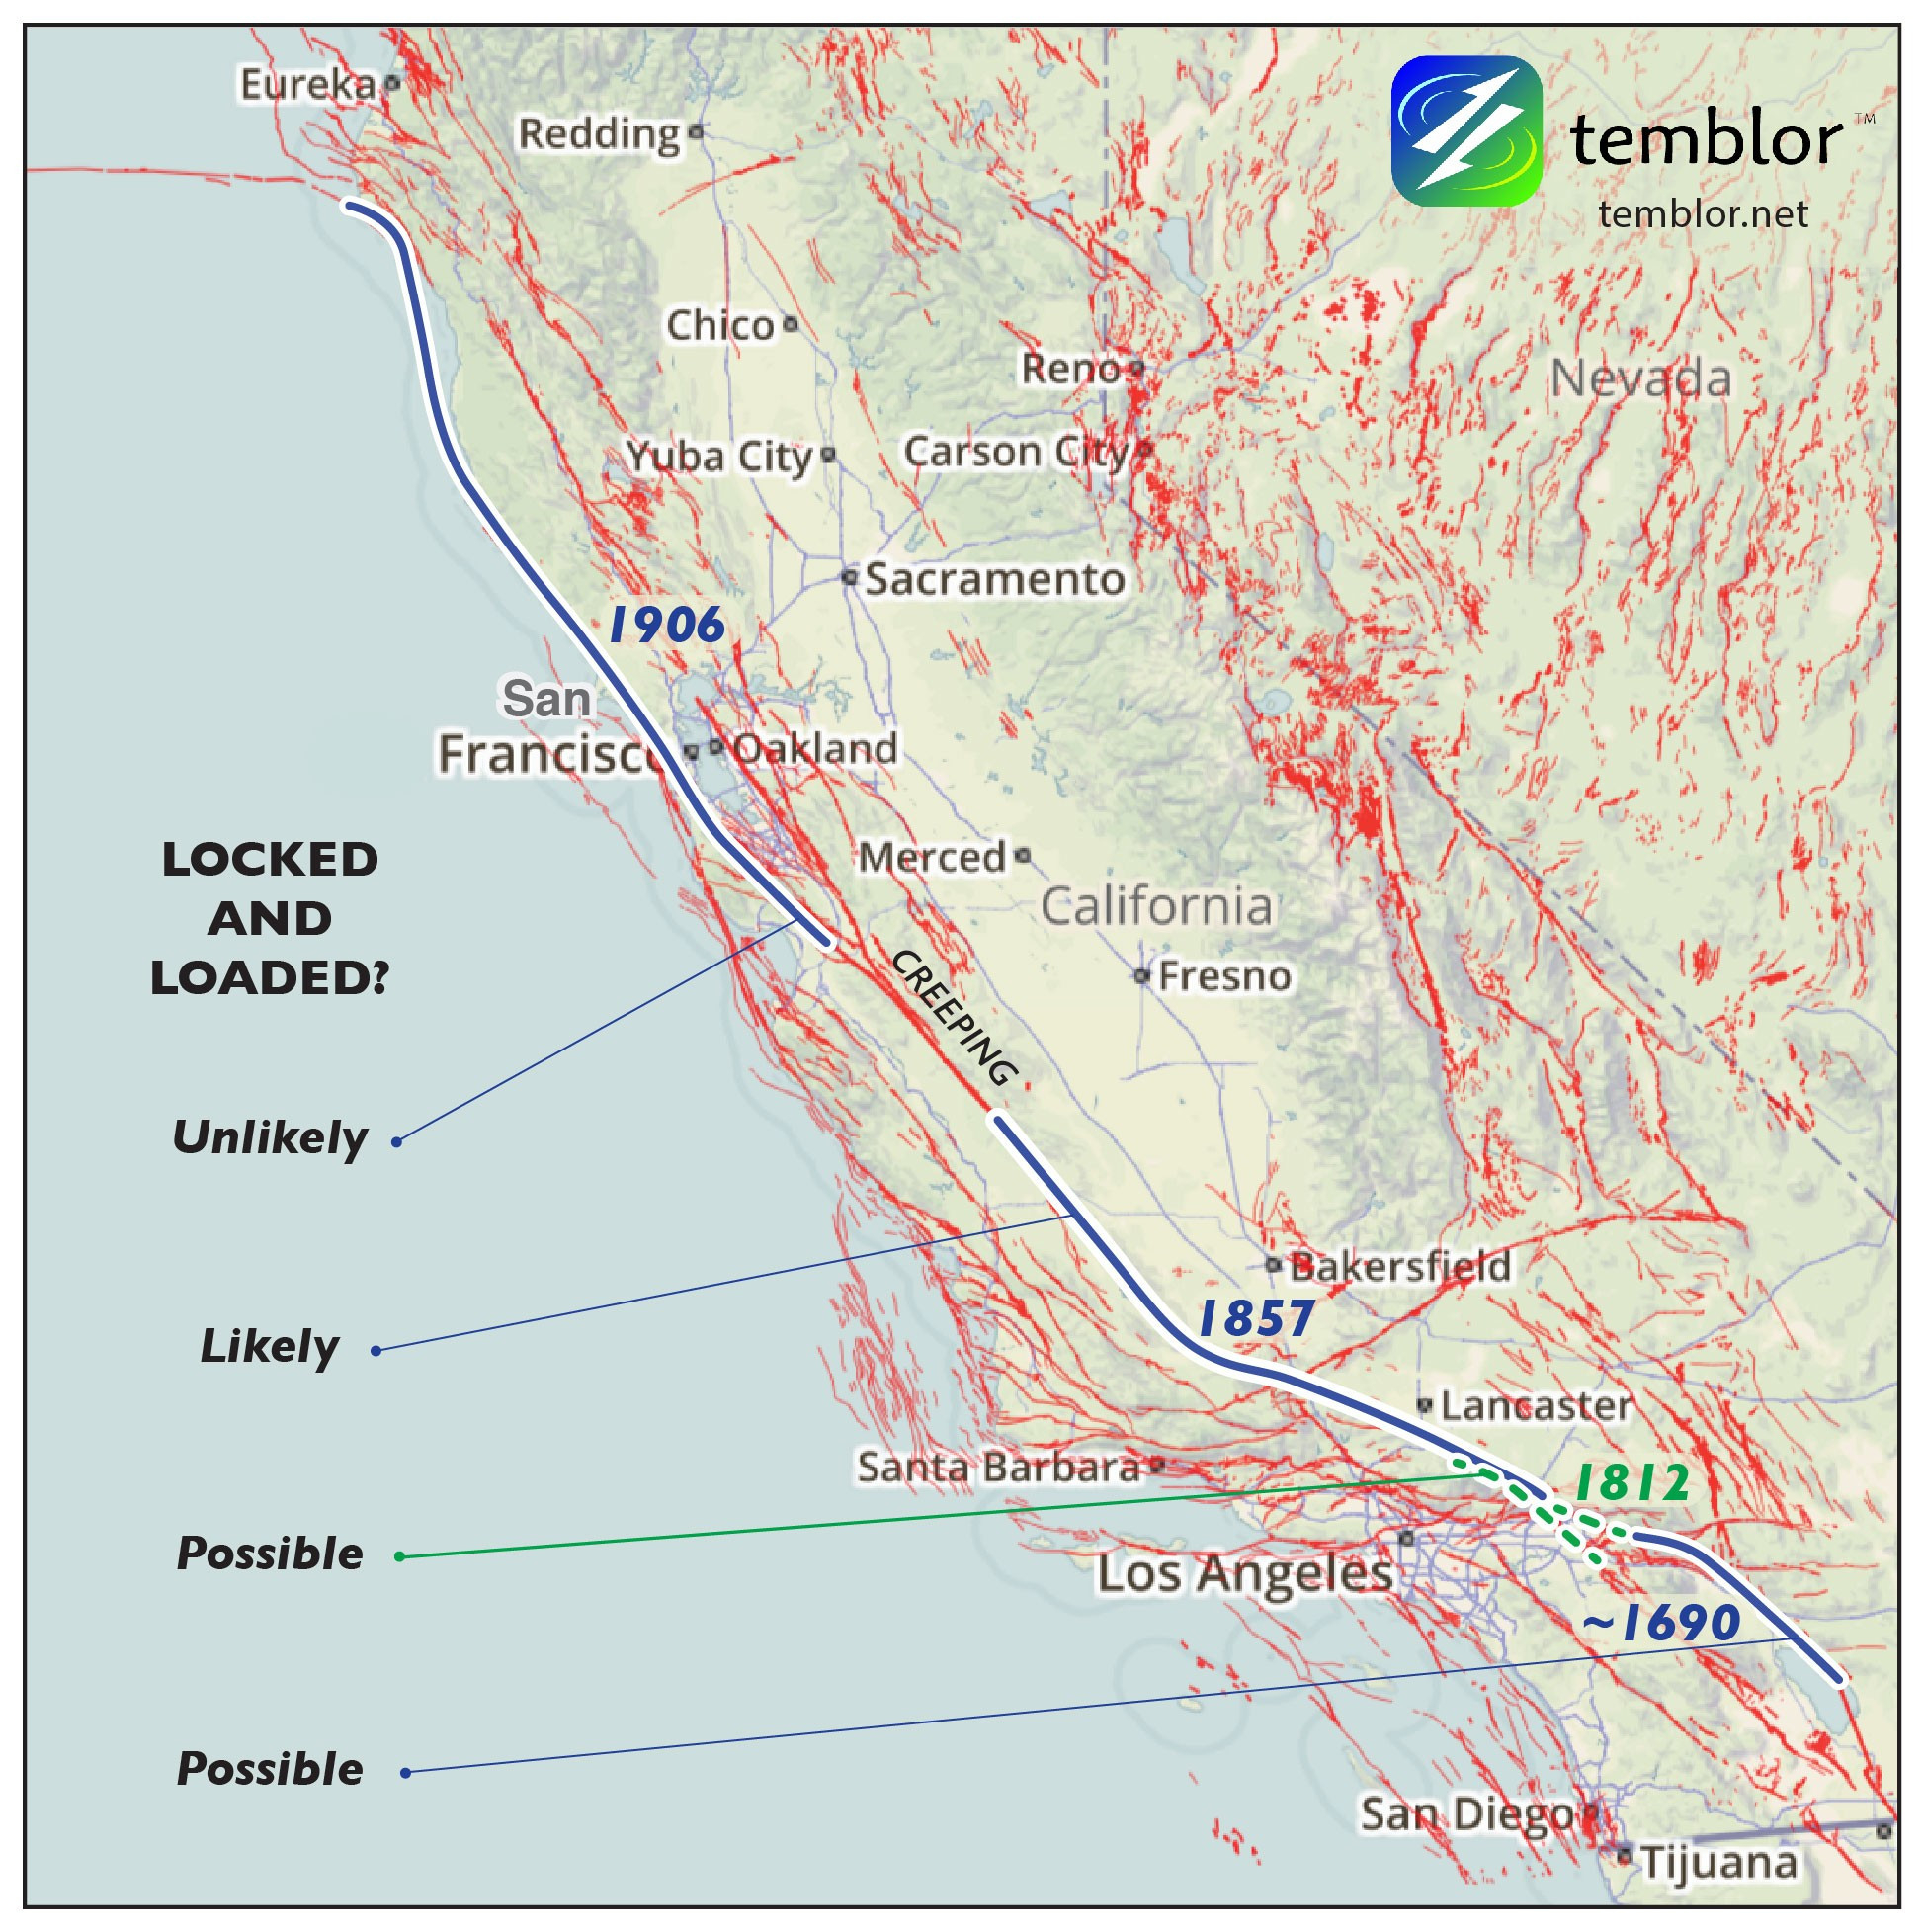 Southern California Fault Lines Map Reference Map Major Us Fault - California Fault Lines Map